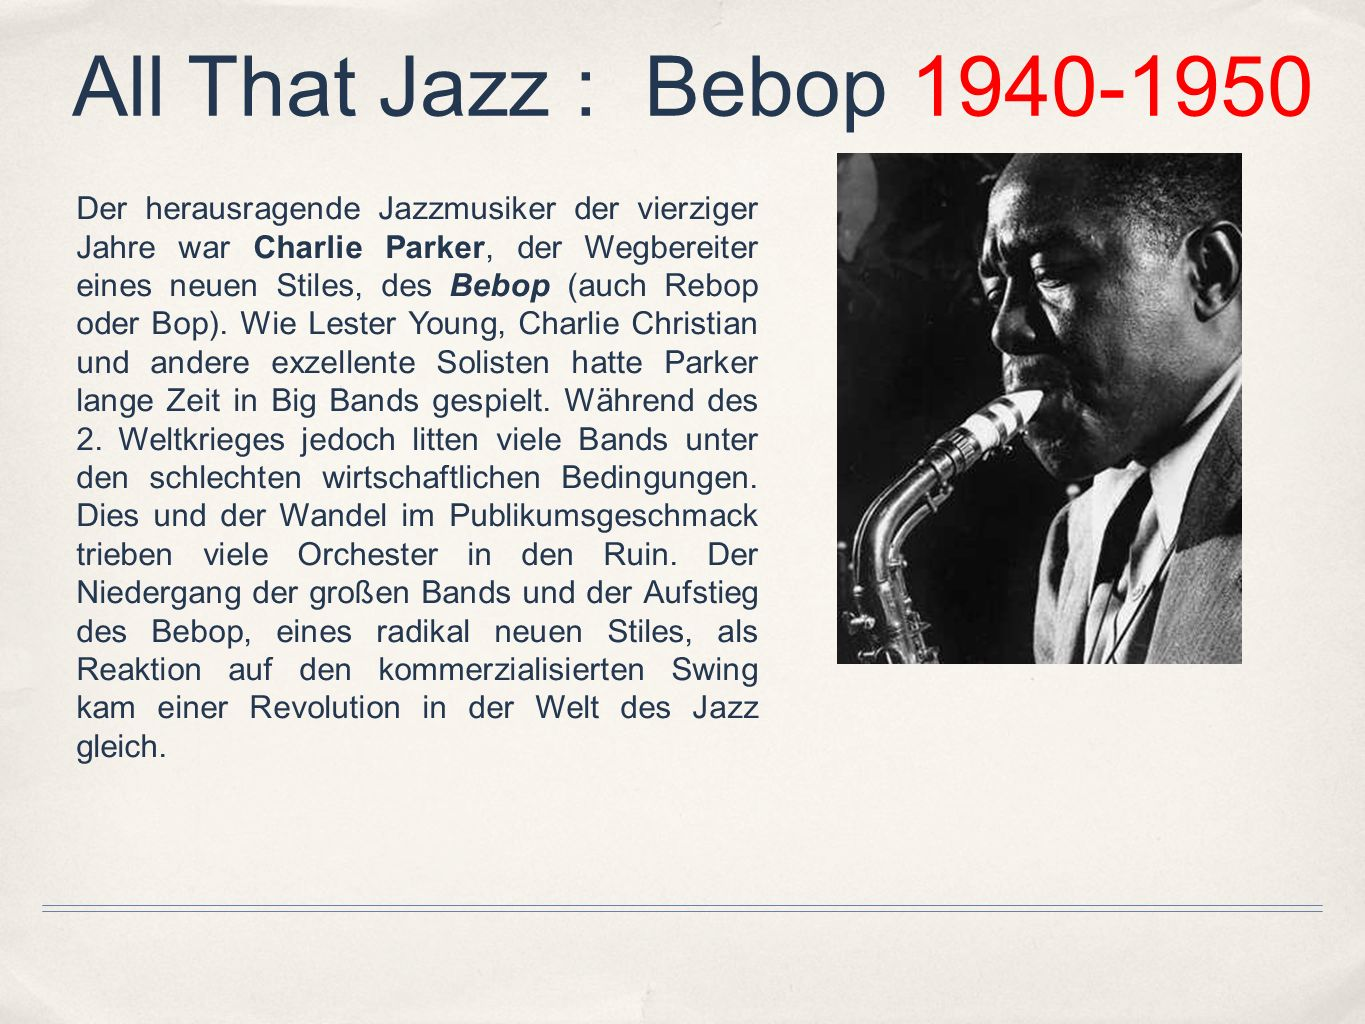 All That Jazz : Bebop